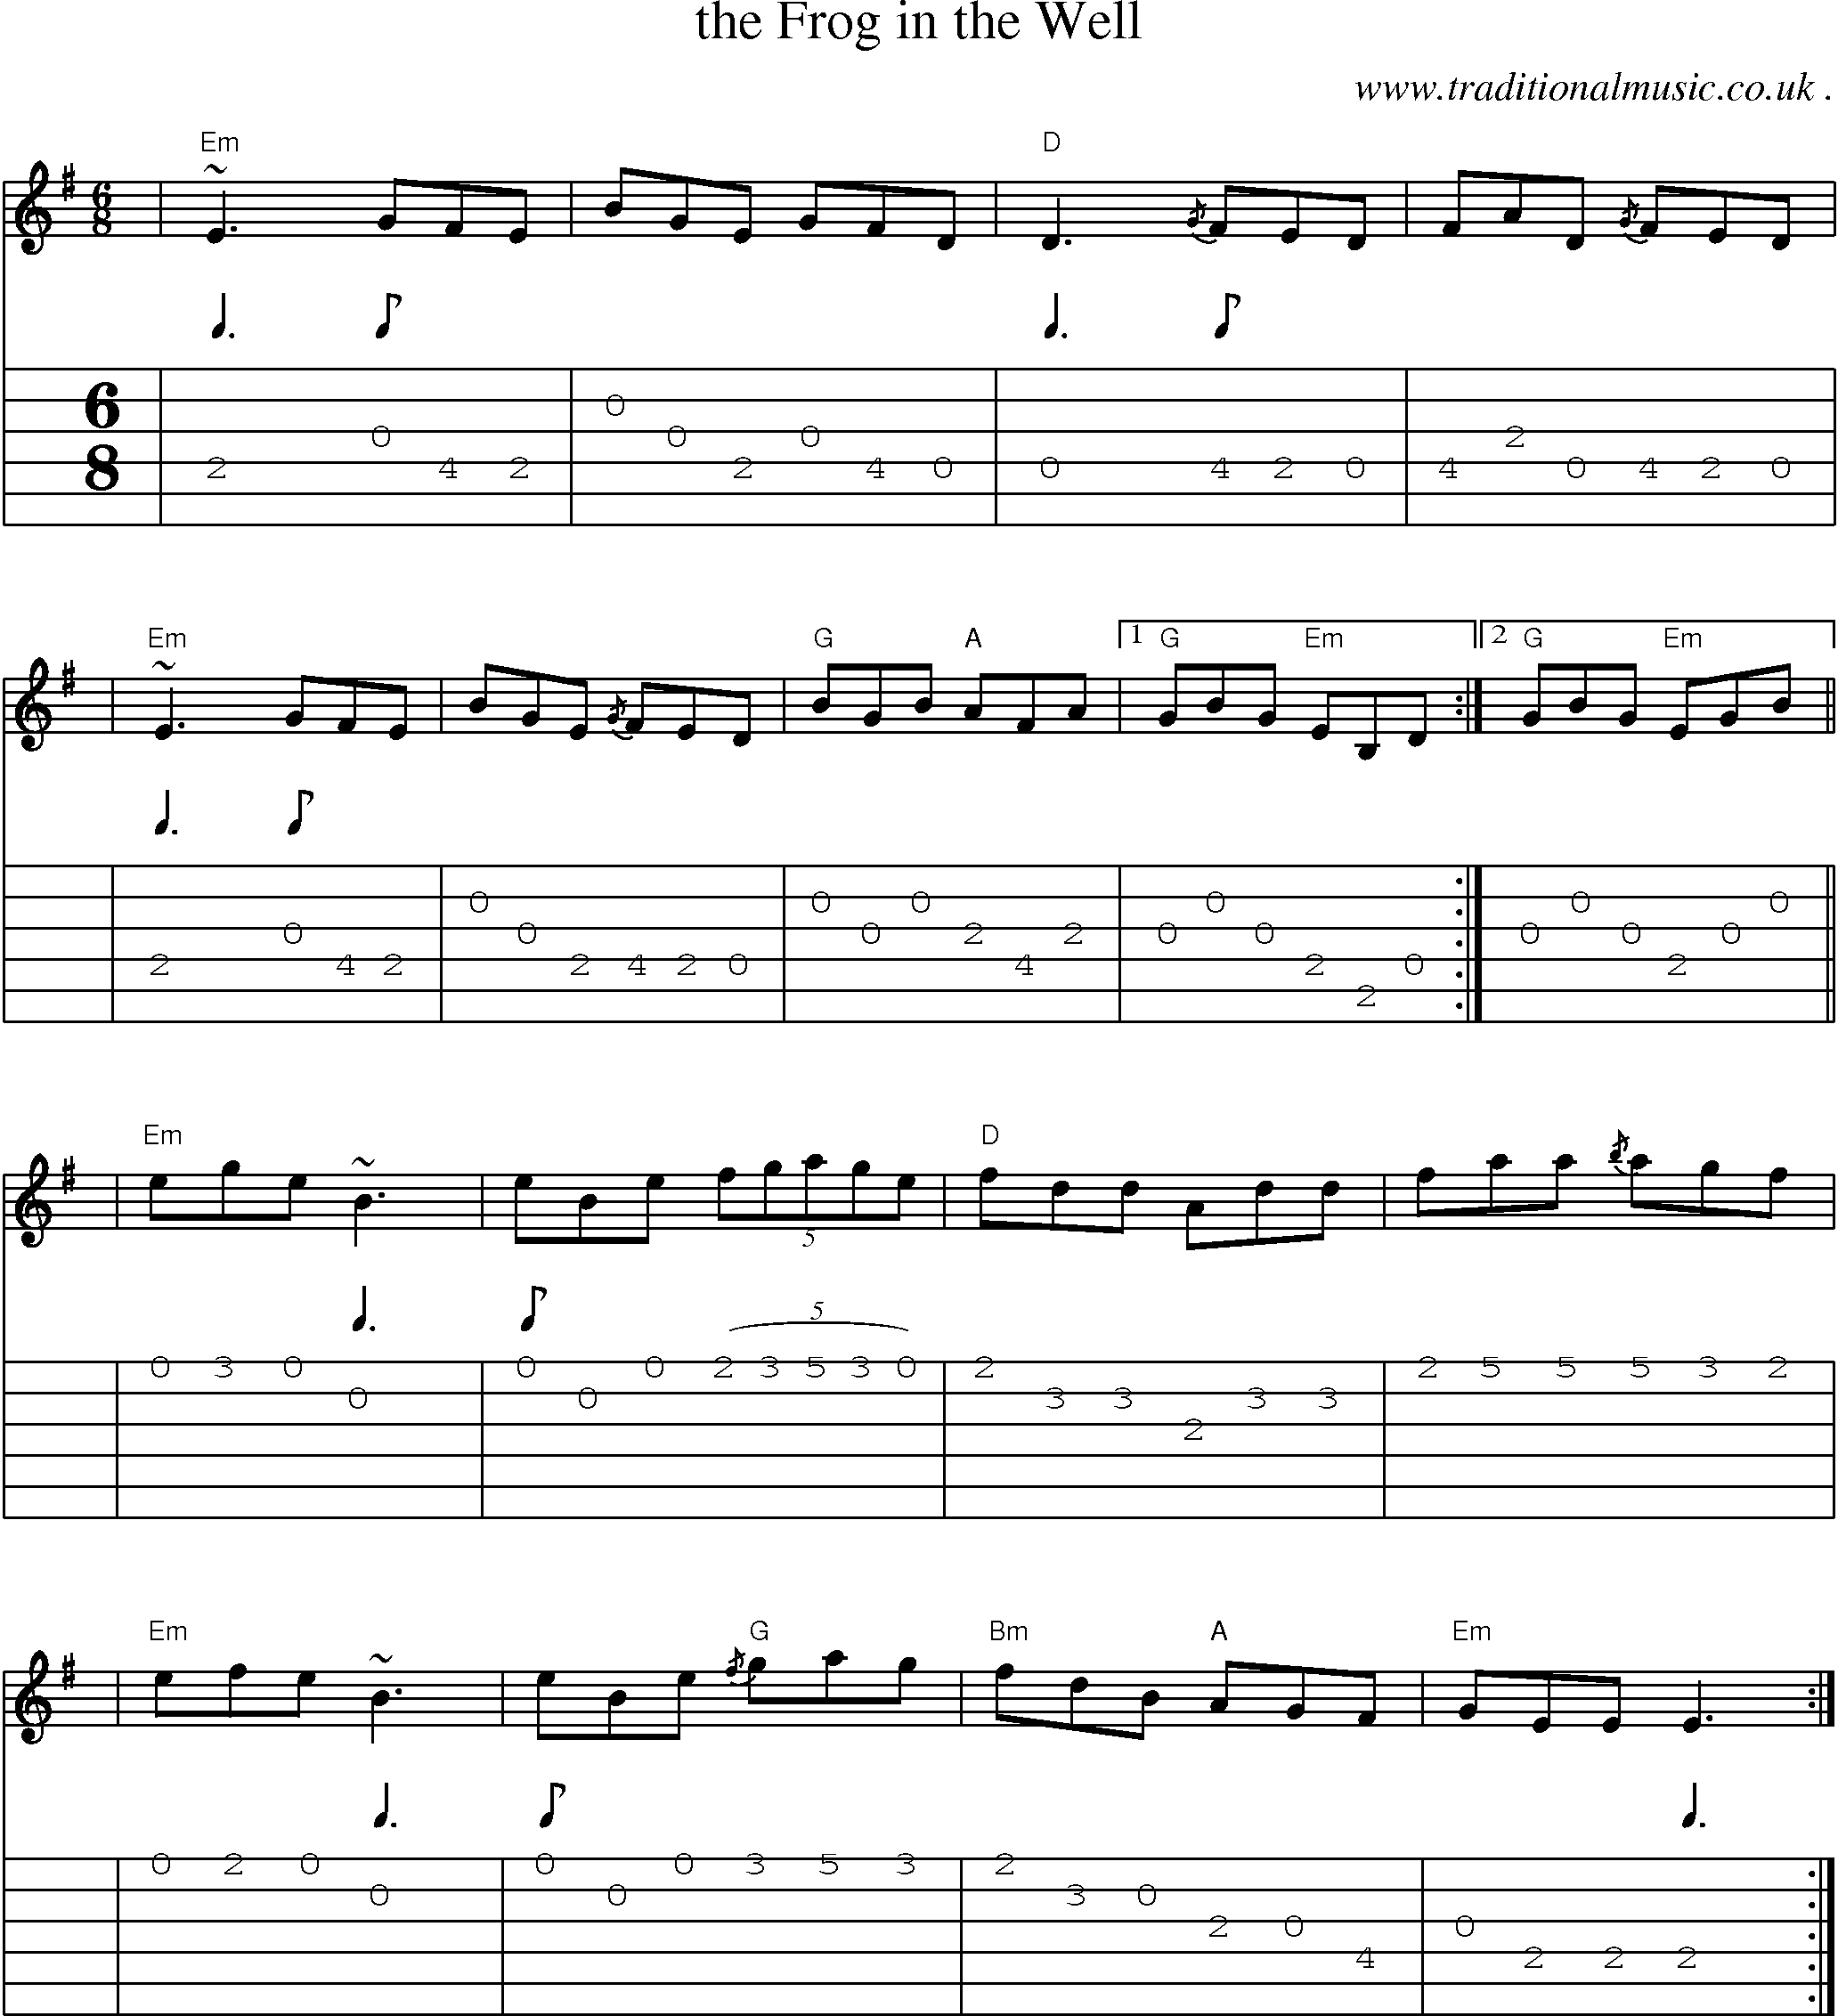 Scottish tune sheetmusic midi mp3 guitar chords tabs the sheet music score chords and guitar tabs for the frog in the well hexwebz Gallery